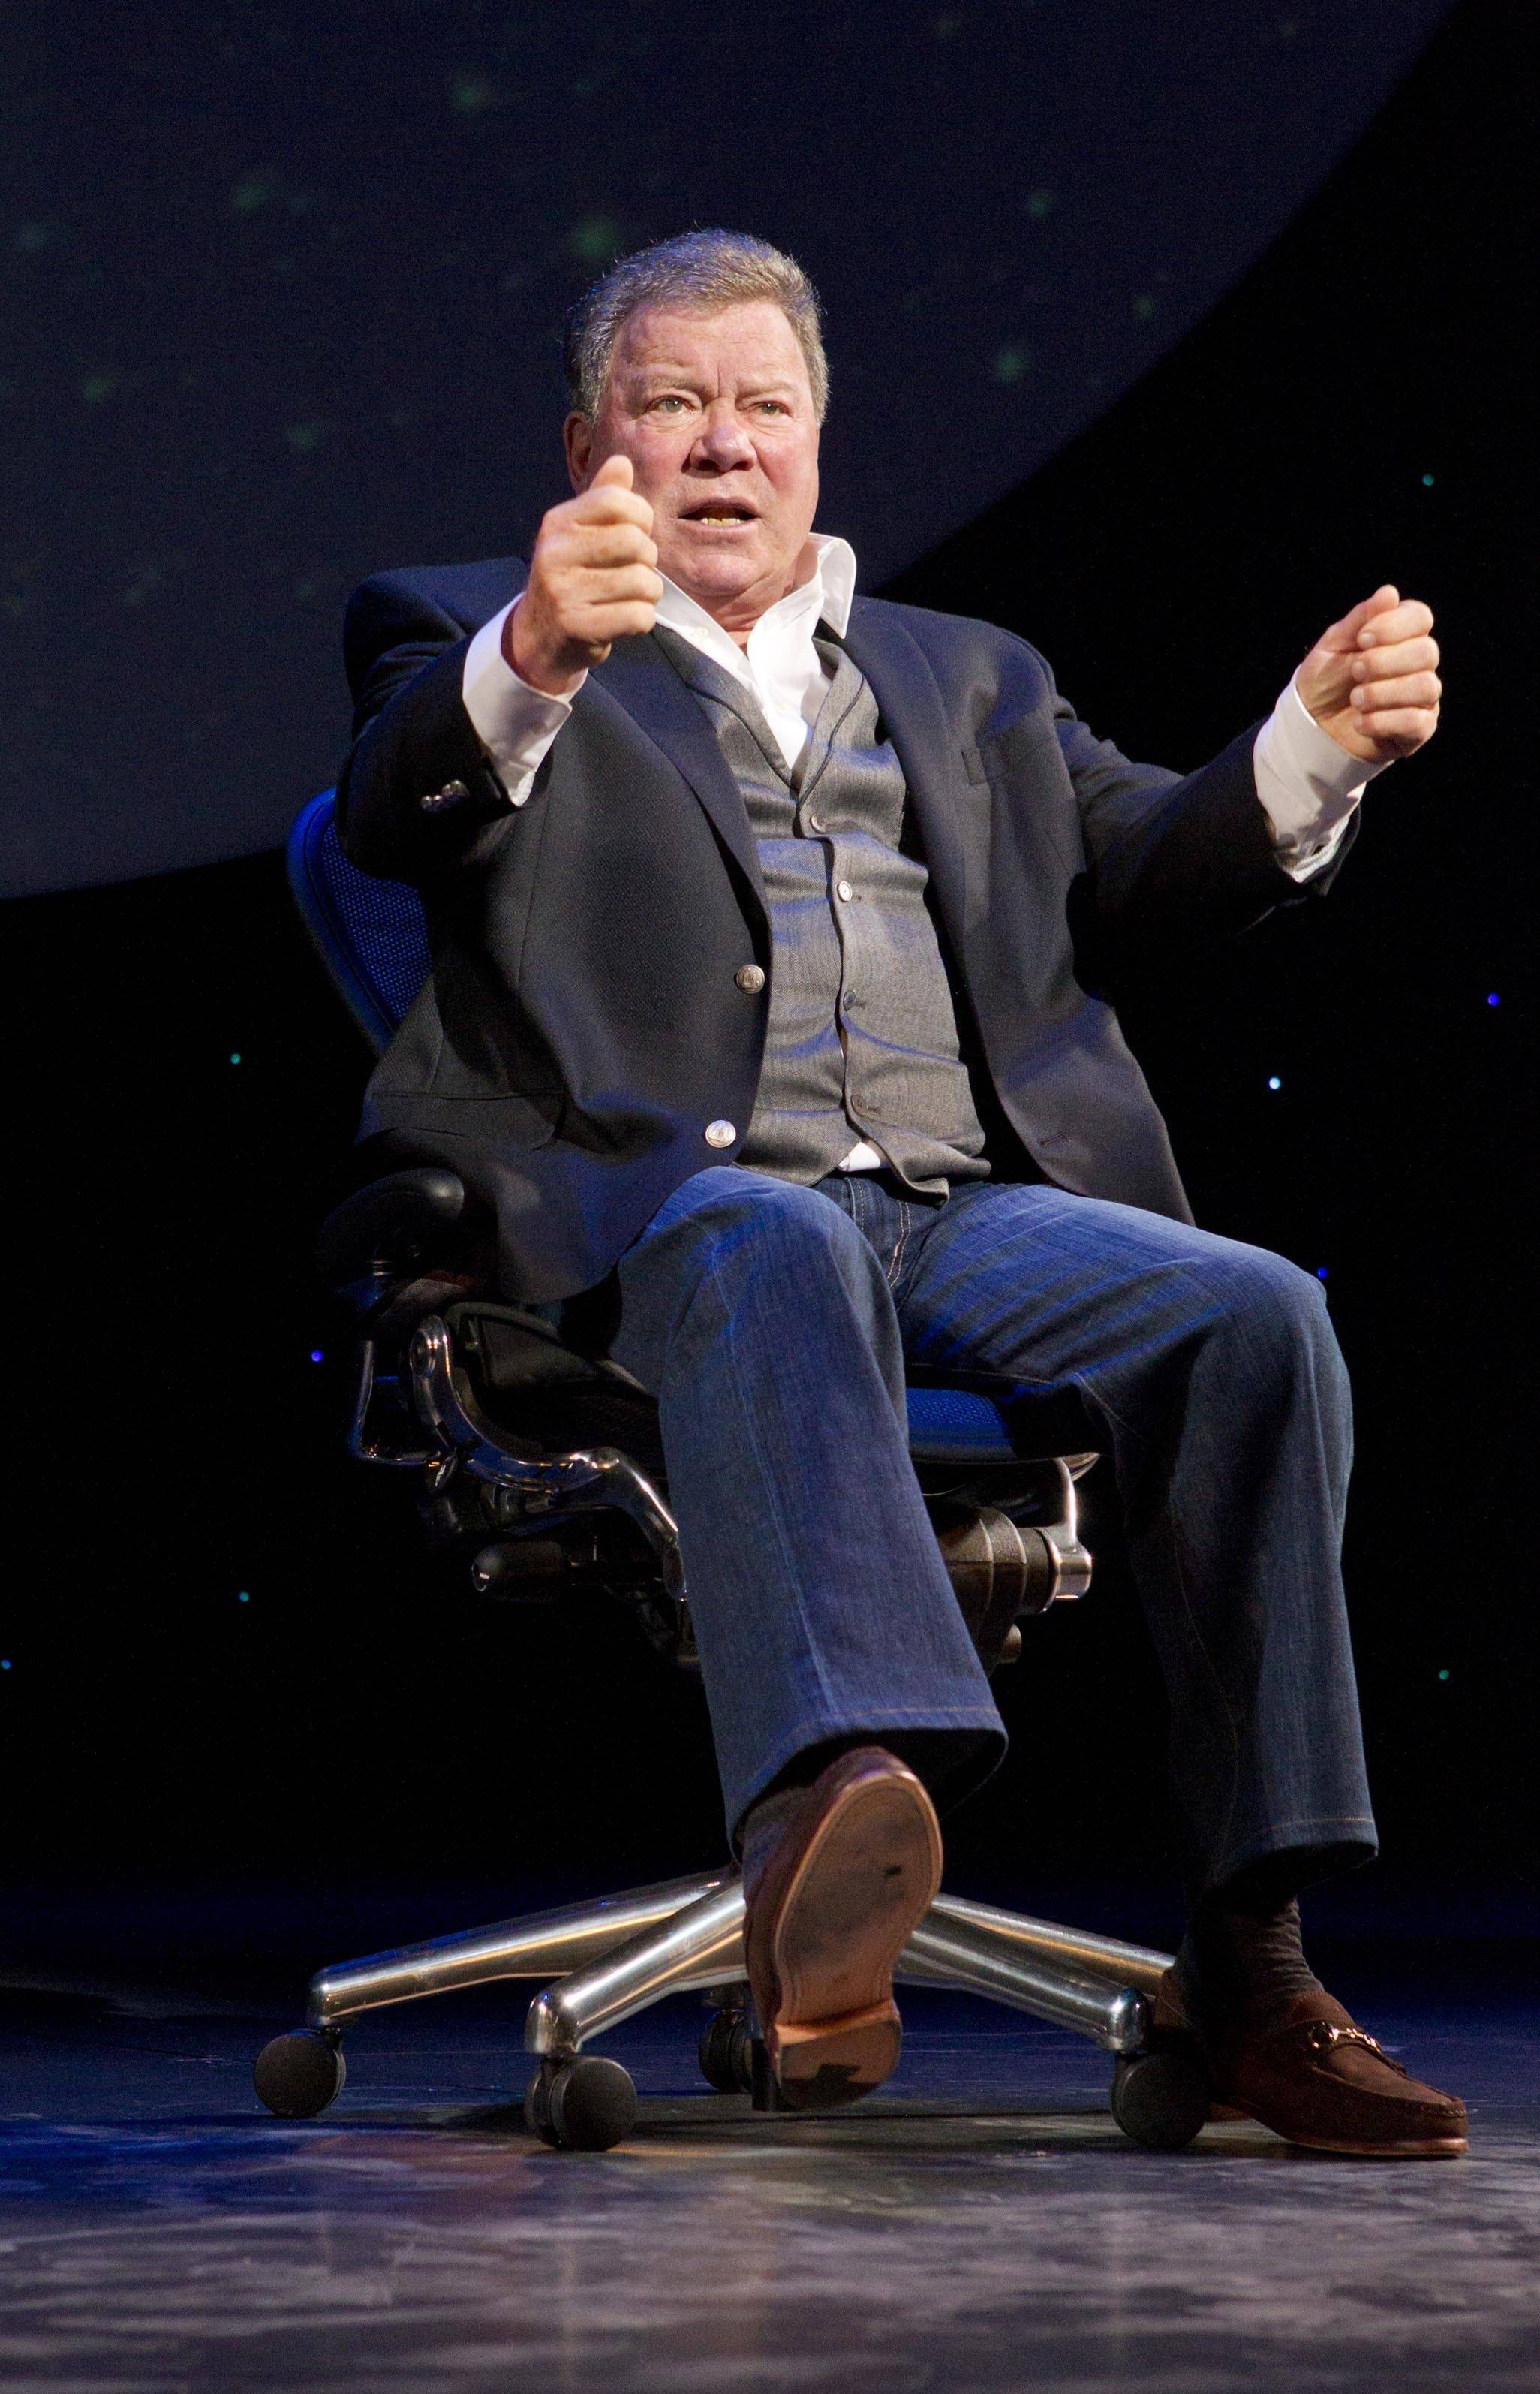 William Shatner brings his one-man show to Chicago tonight.